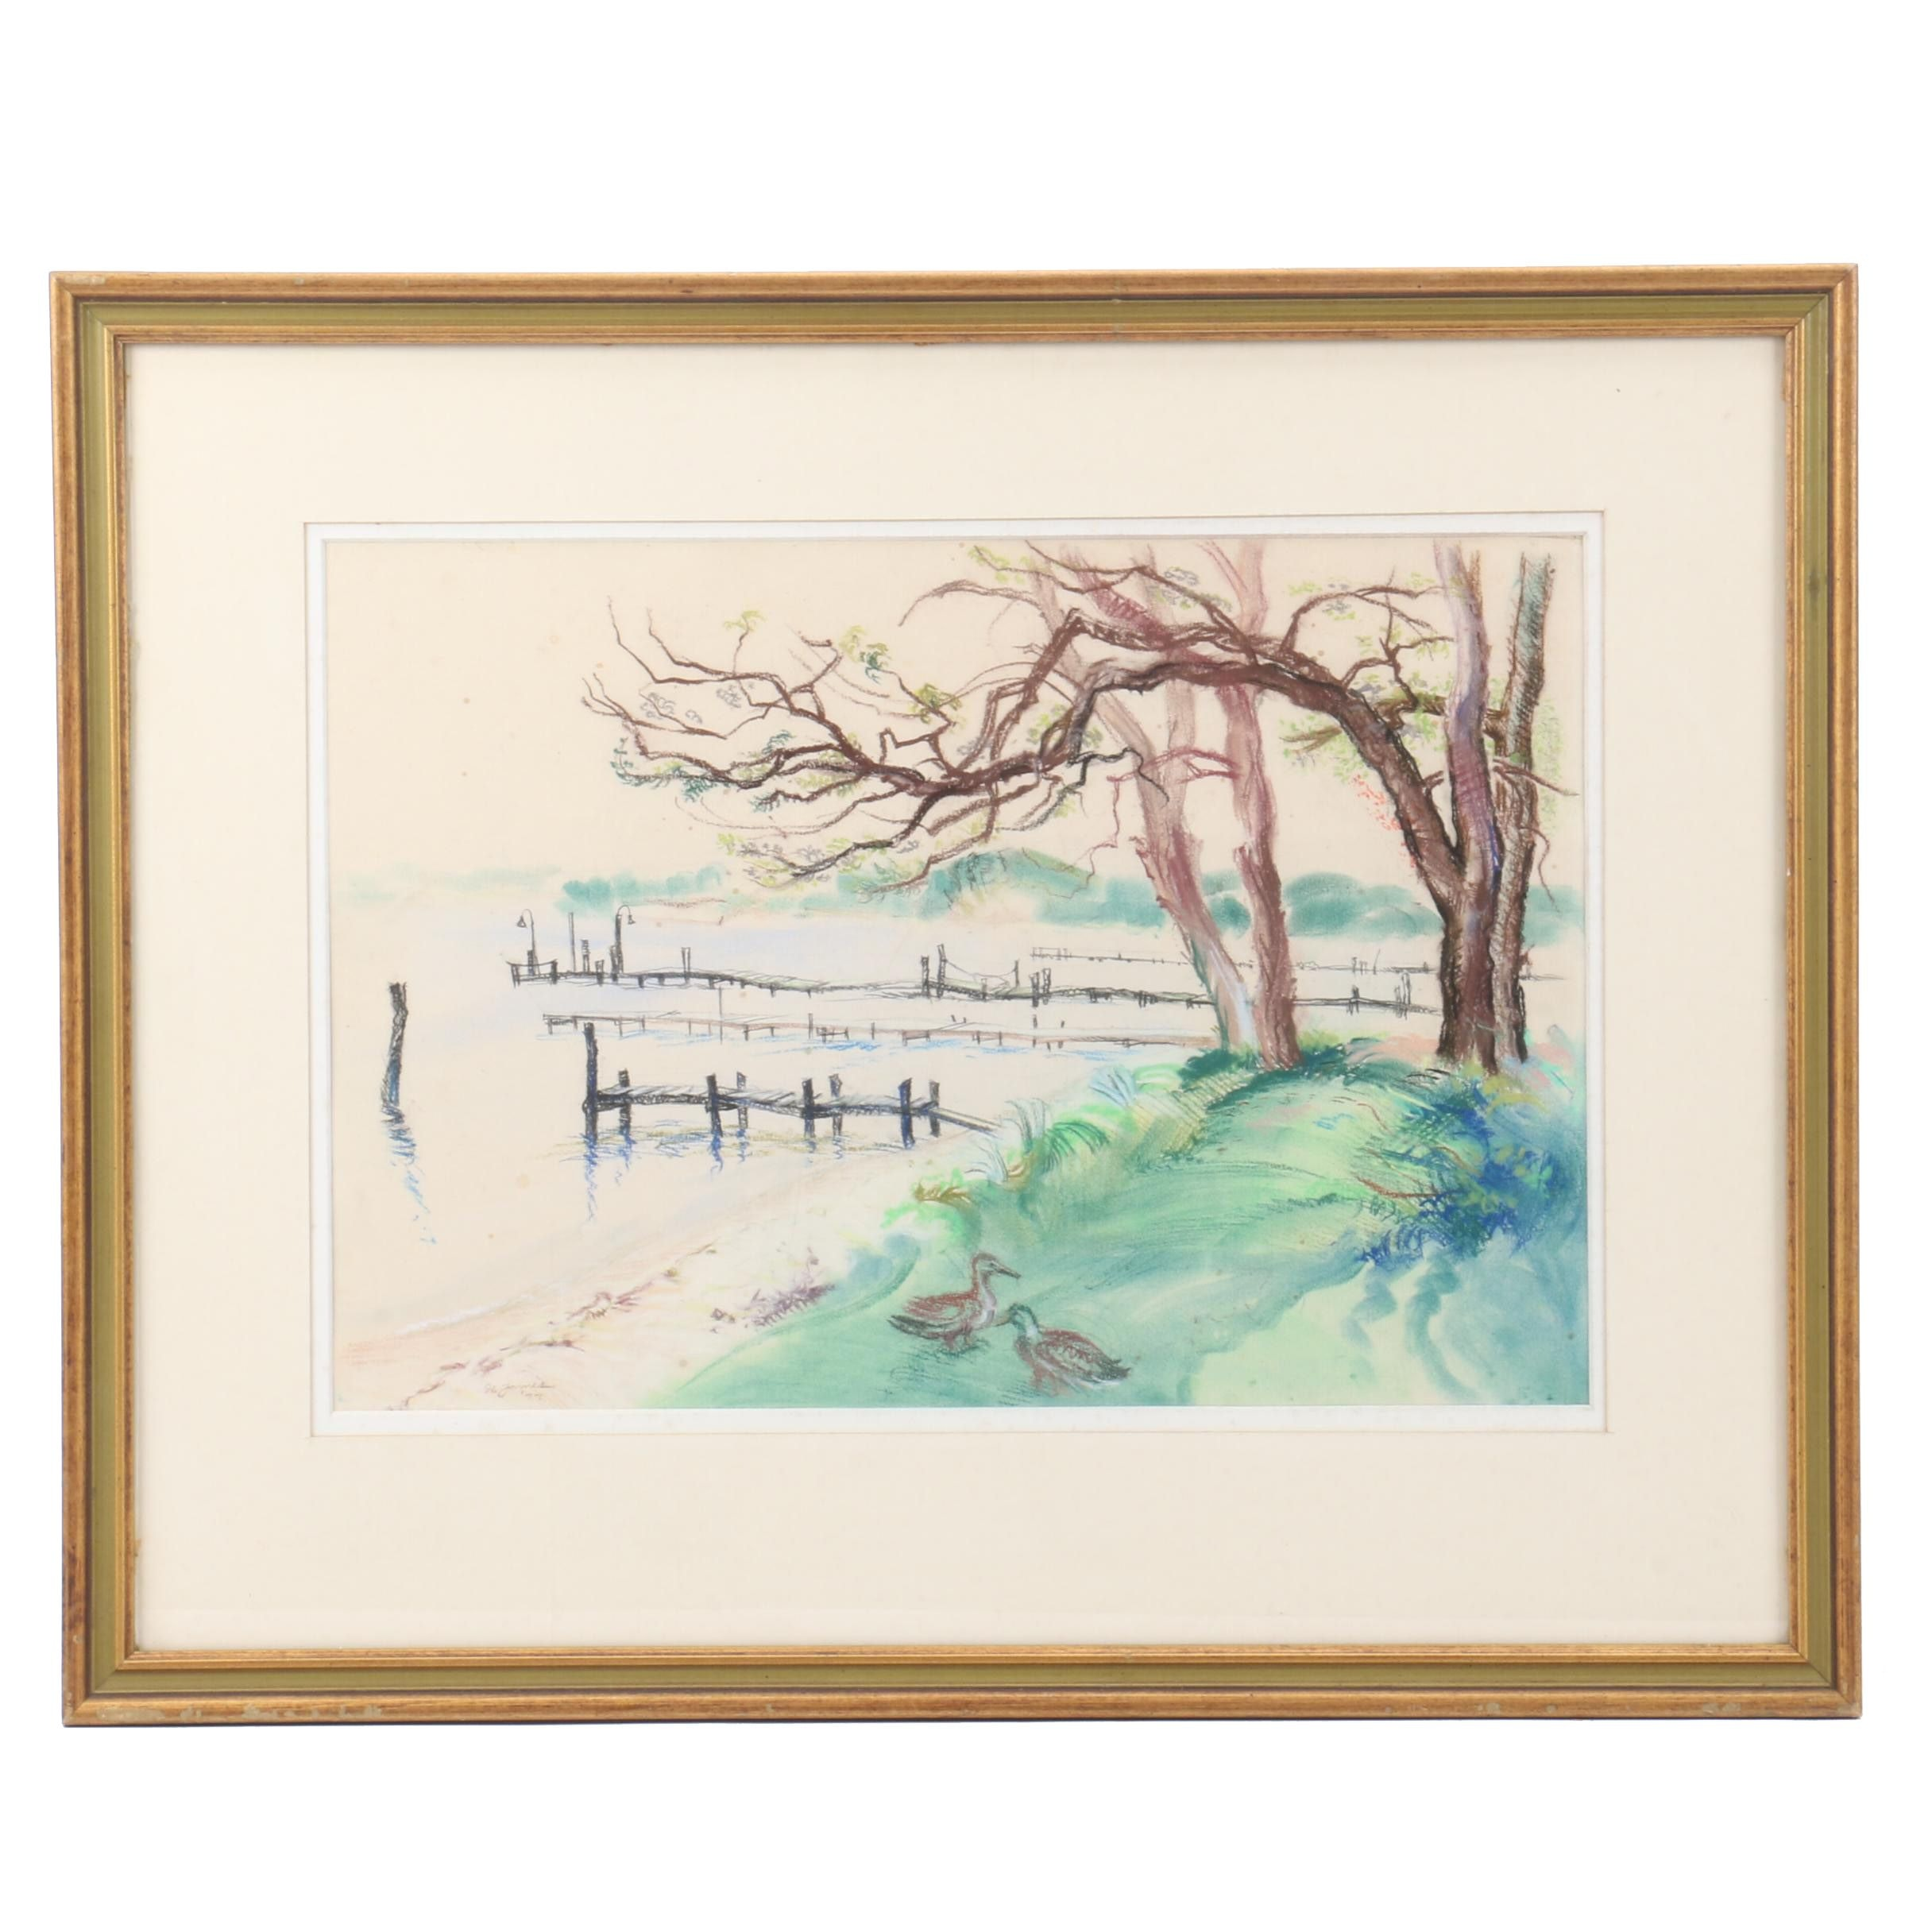 H. James 1977 Pastel Drawing of Coastal Scene with Wooden Docks